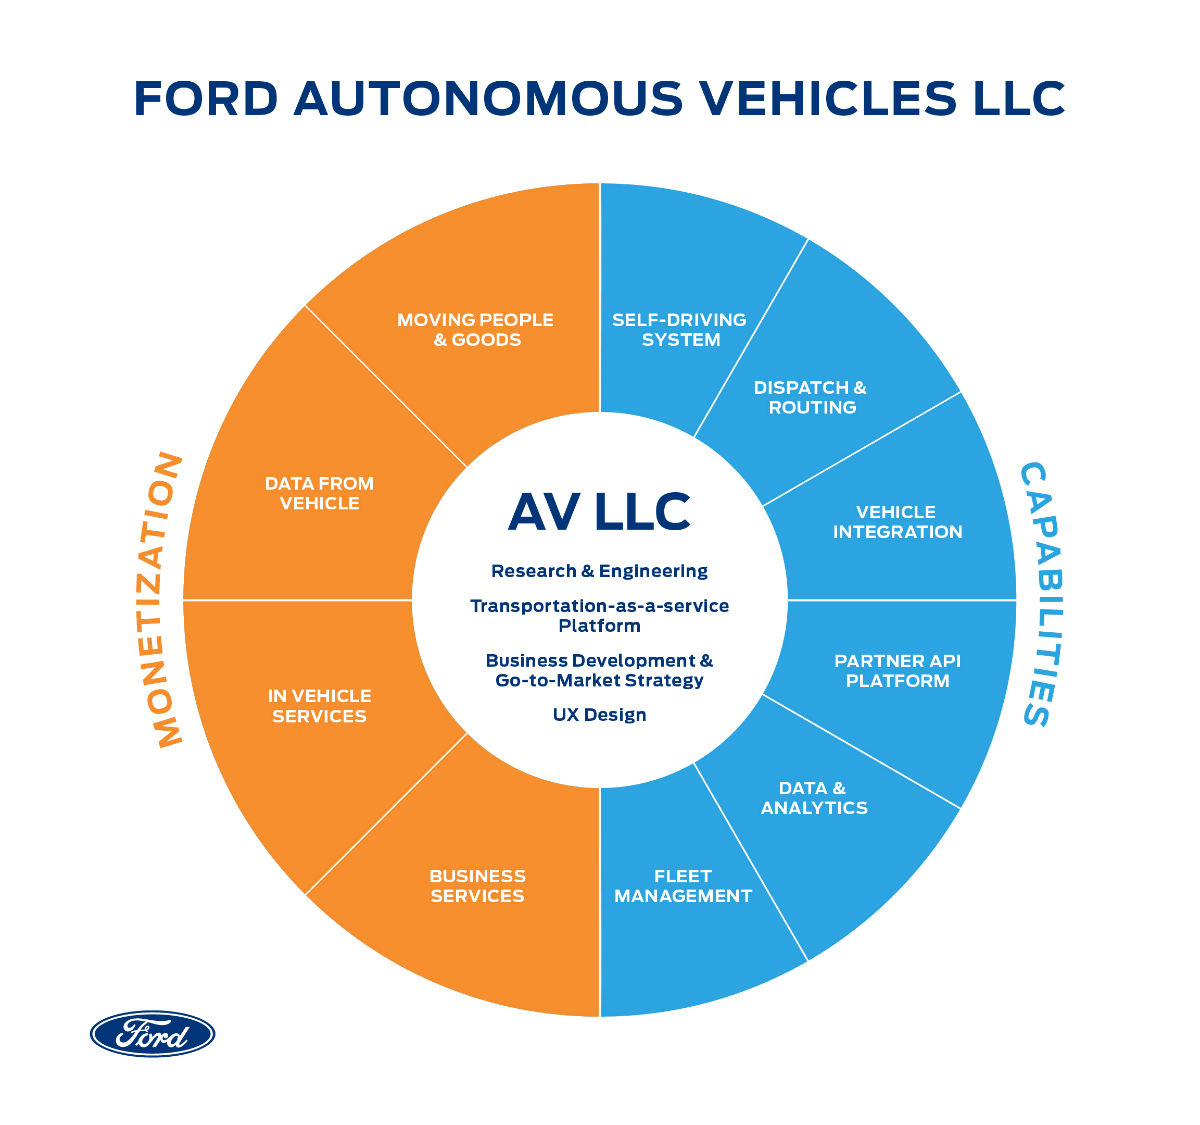 pie-chart-showing-the-inner-workings-of-Ford-Autonomous